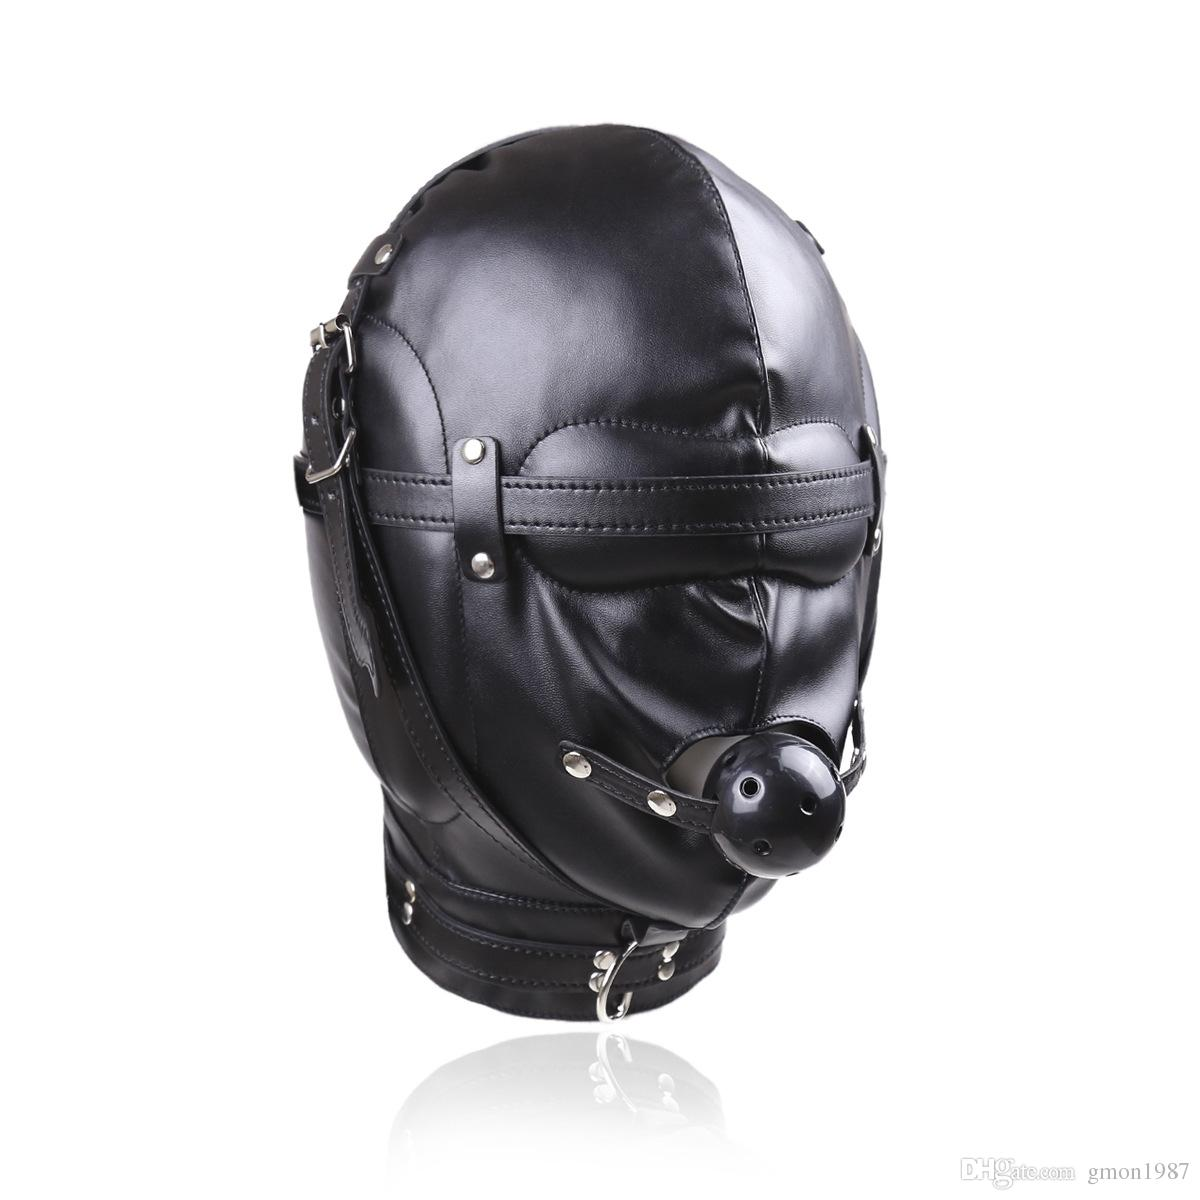 German BDSM play with masked guy